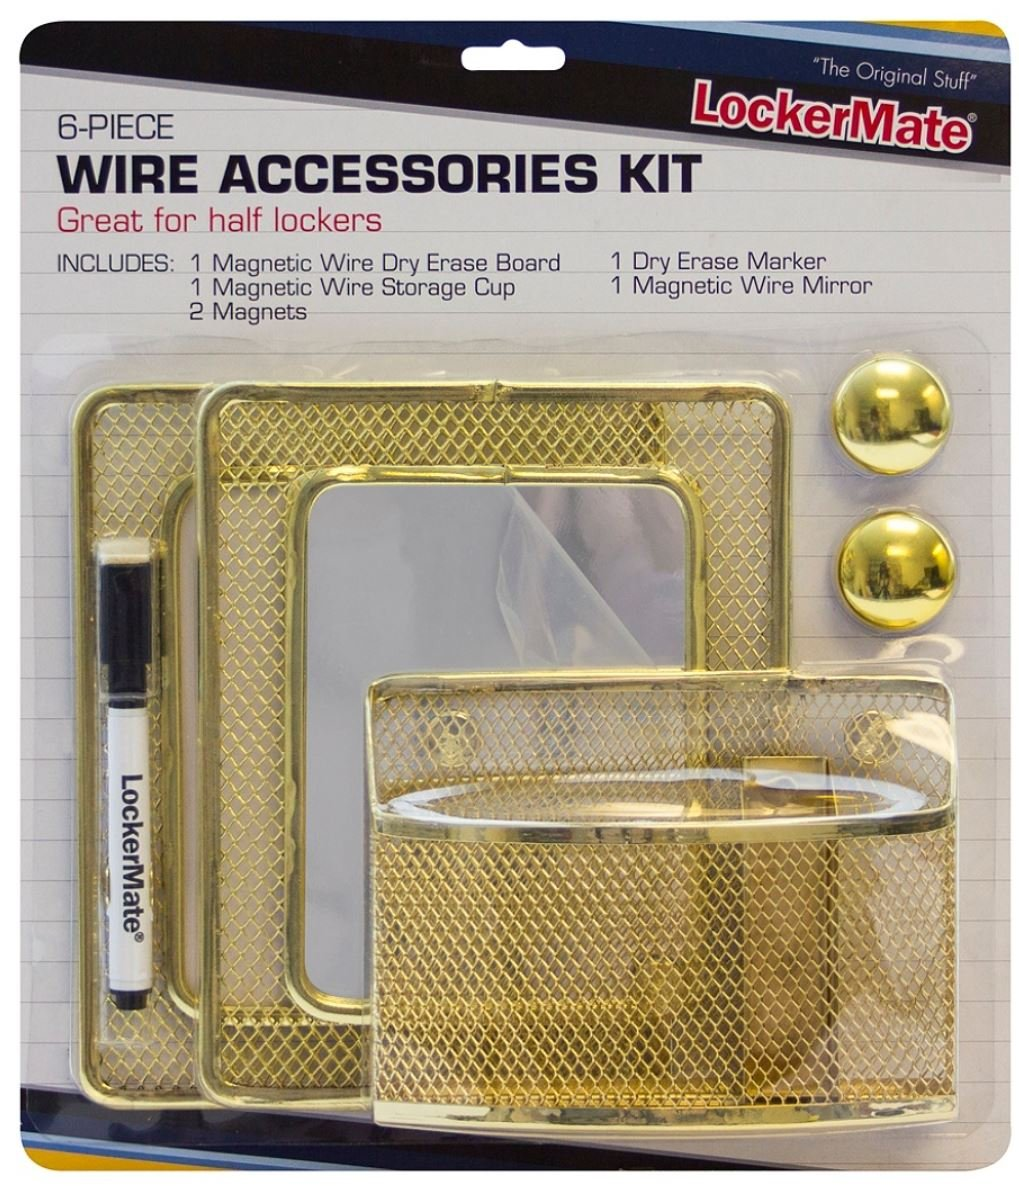 LockerMate 6 Piece Gold Wire Accessories Kit - Dry Erase Board, Magnetic Wire Storage Cup, 2 Magnets, Dry Erase Marker, Magnetic Wire Mirror